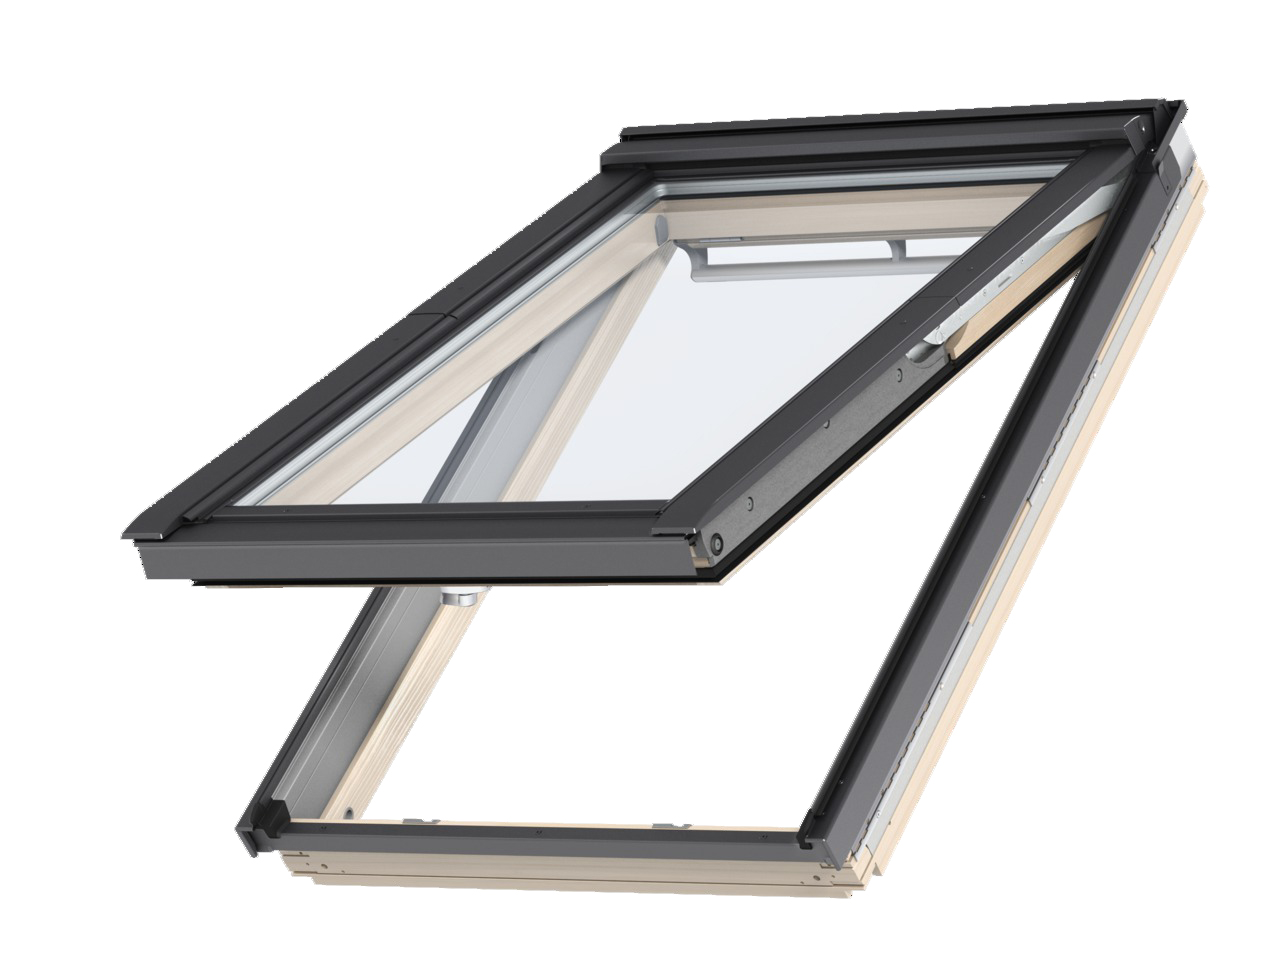 prix velux 114x118 affordable volets roulants with prix velux 114x118 perfect dimension velux. Black Bedroom Furniture Sets. Home Design Ideas